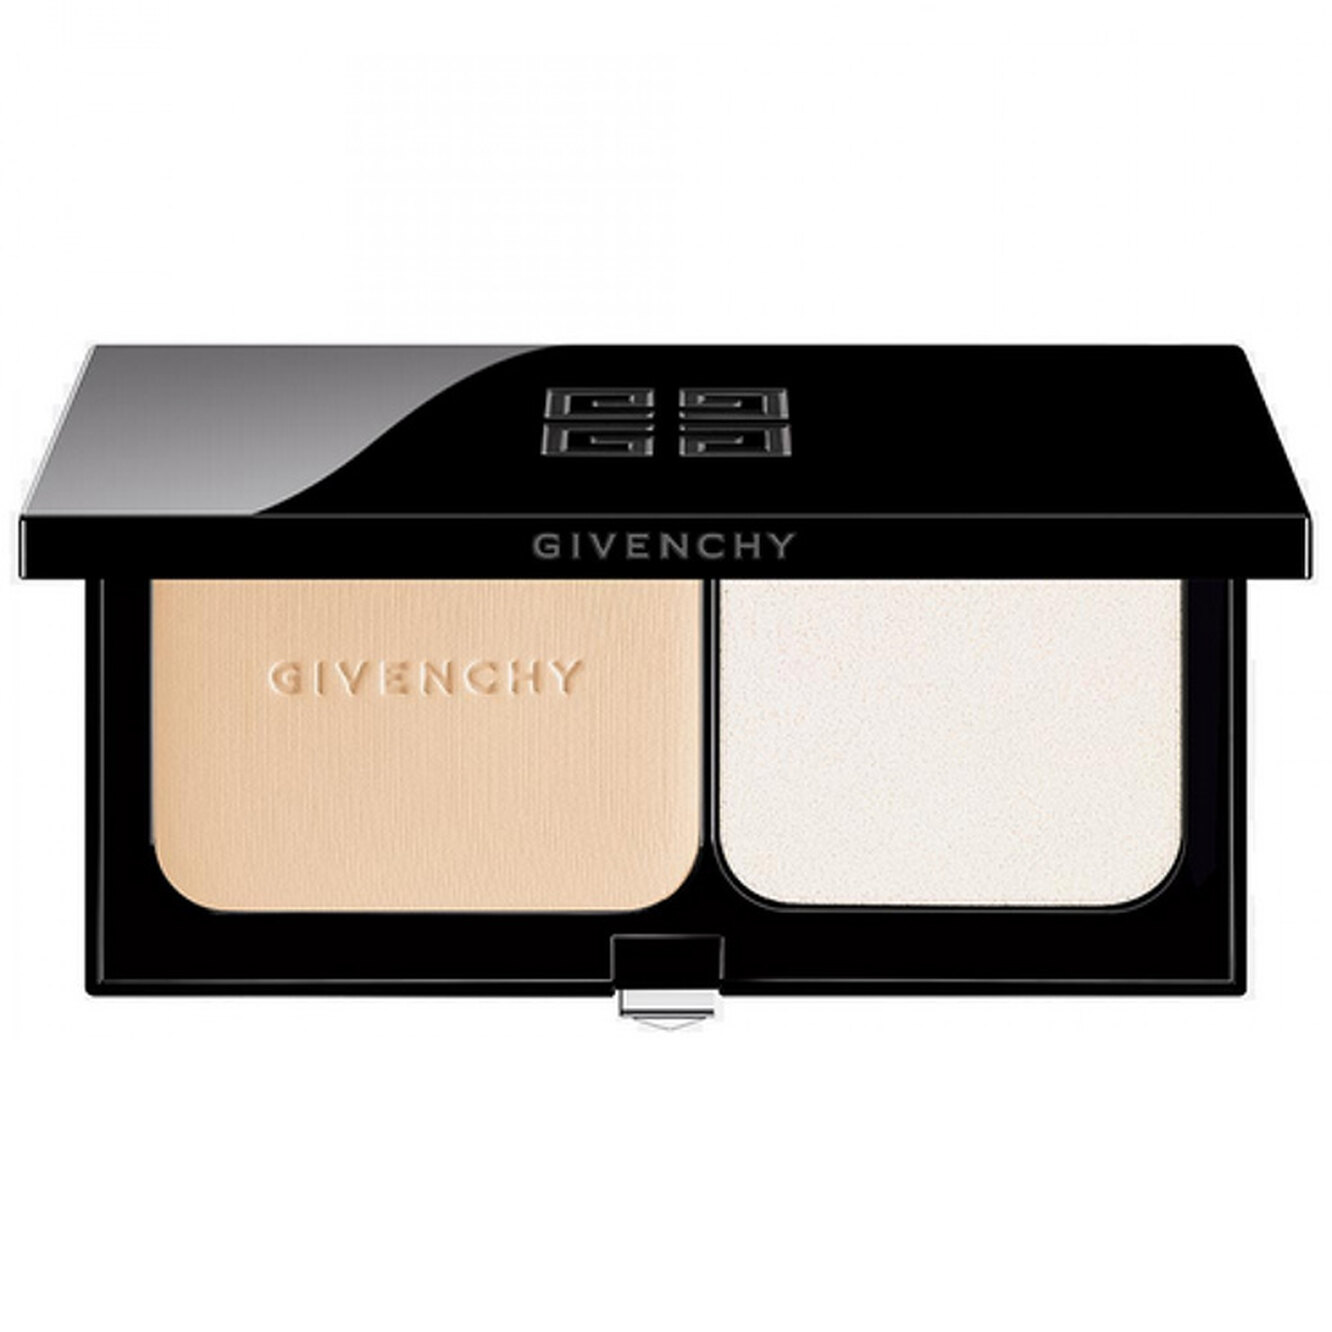 Matissime Velvet Compact Foundation, Givenchy